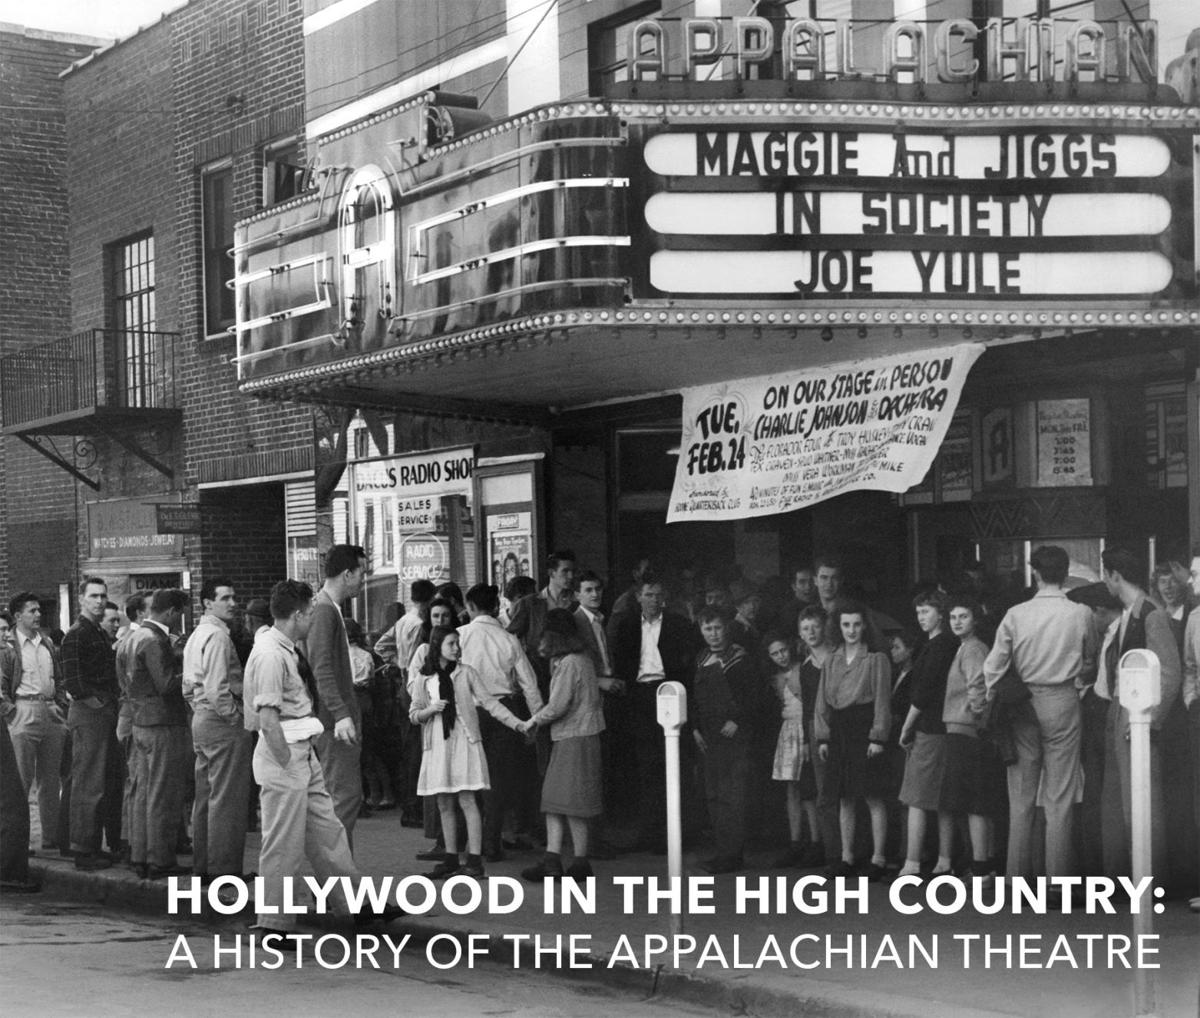 Hollywood in the High Country